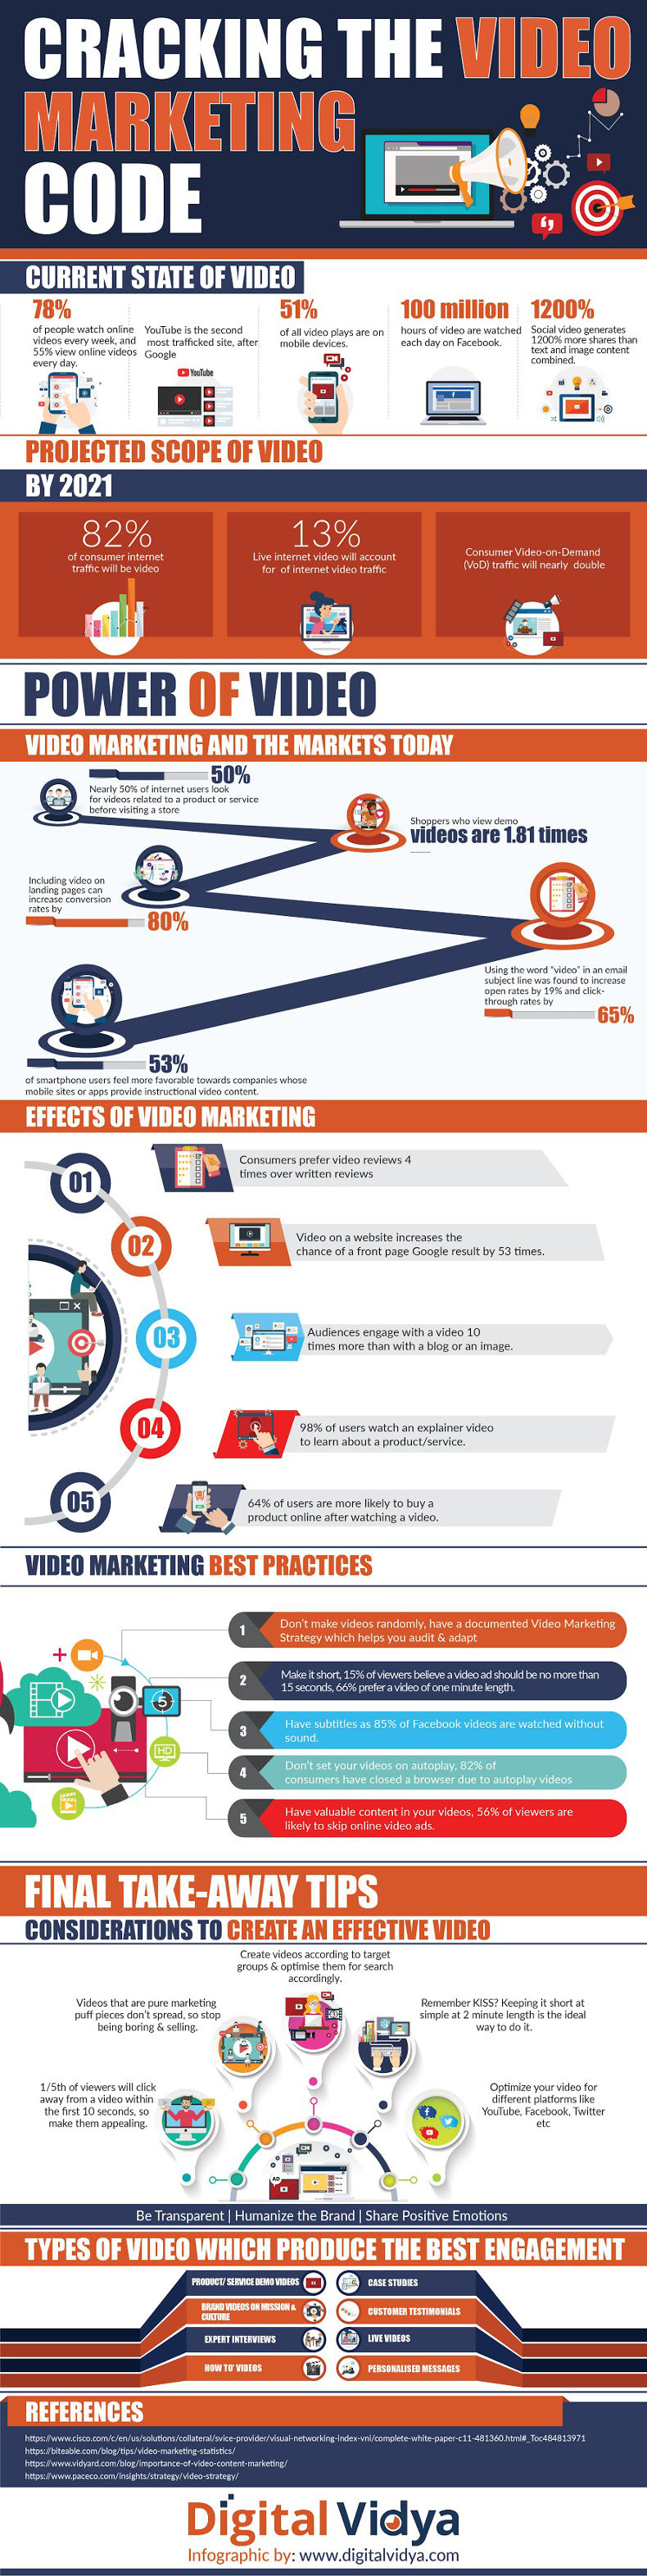 Infographic showing how video marketing works